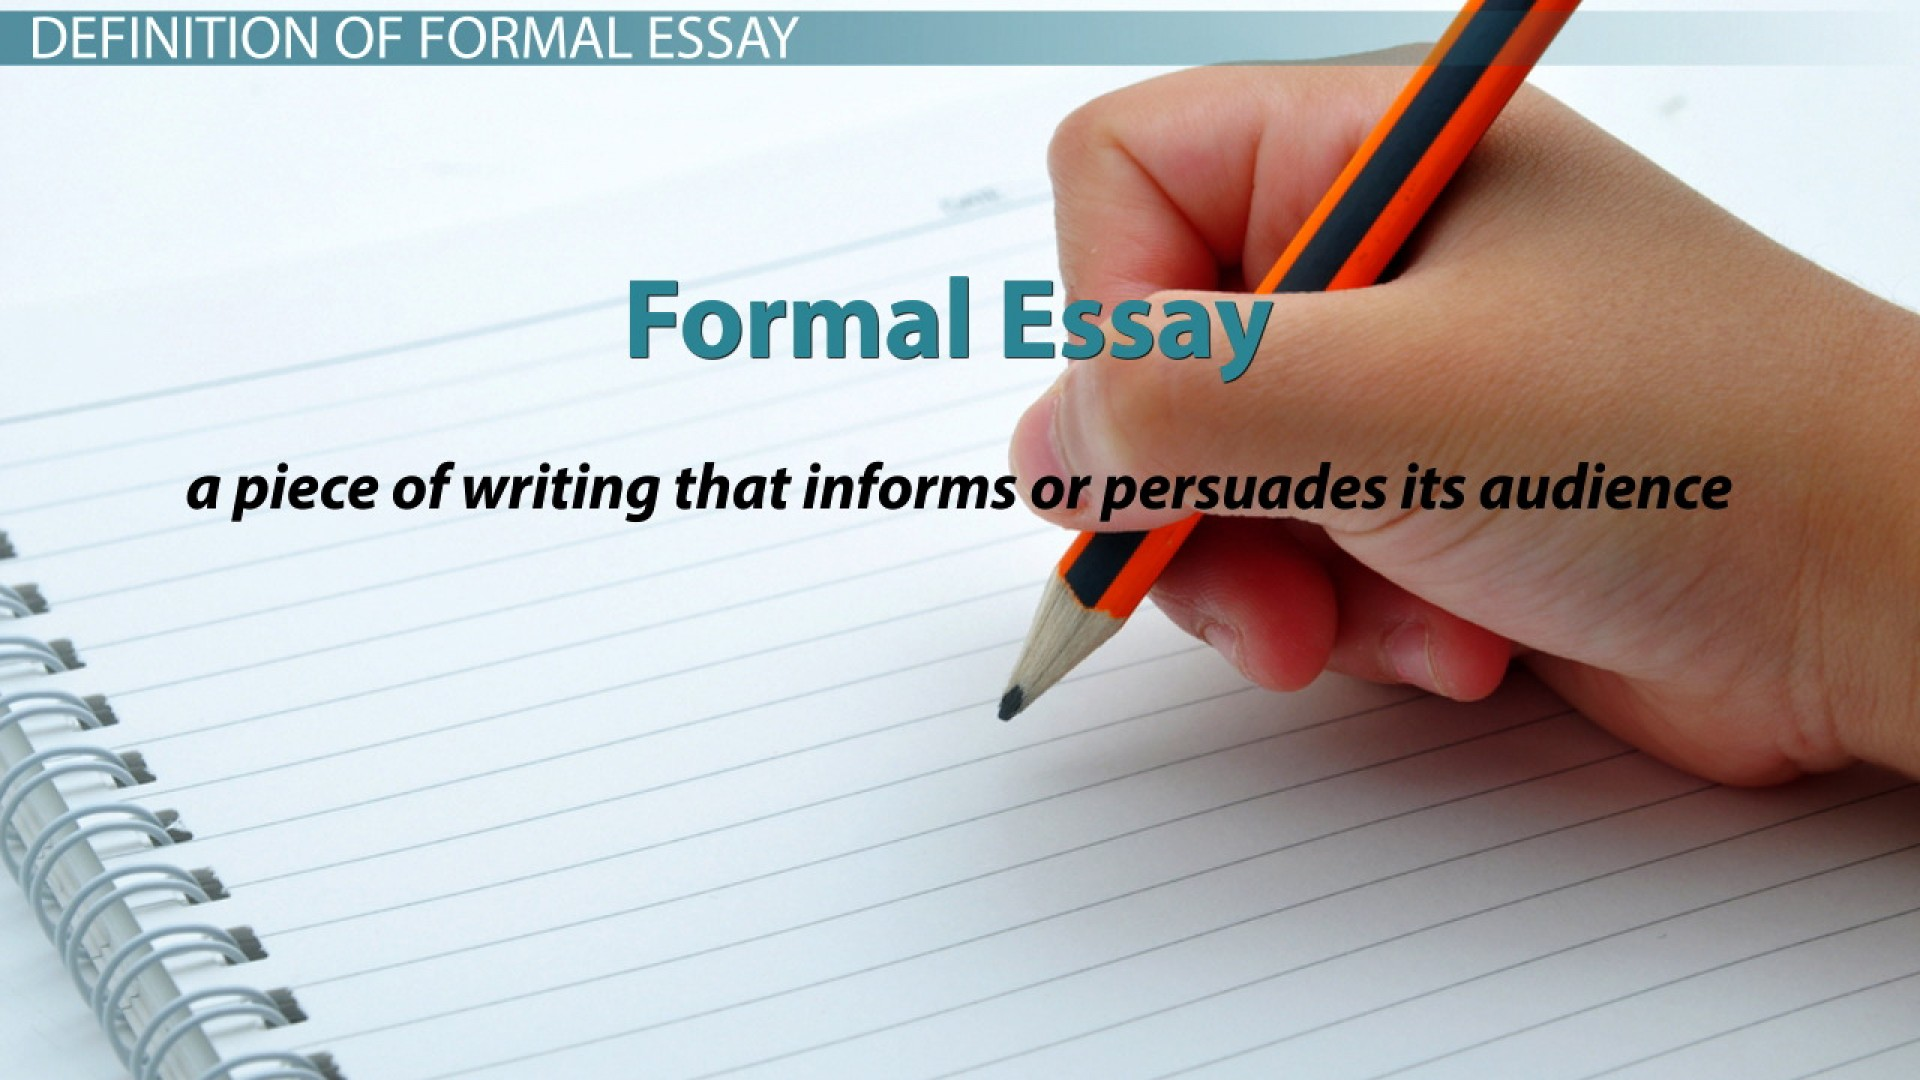 003  Formal Essay Definitions 111863 Literature Striking Definition Review Expository1920